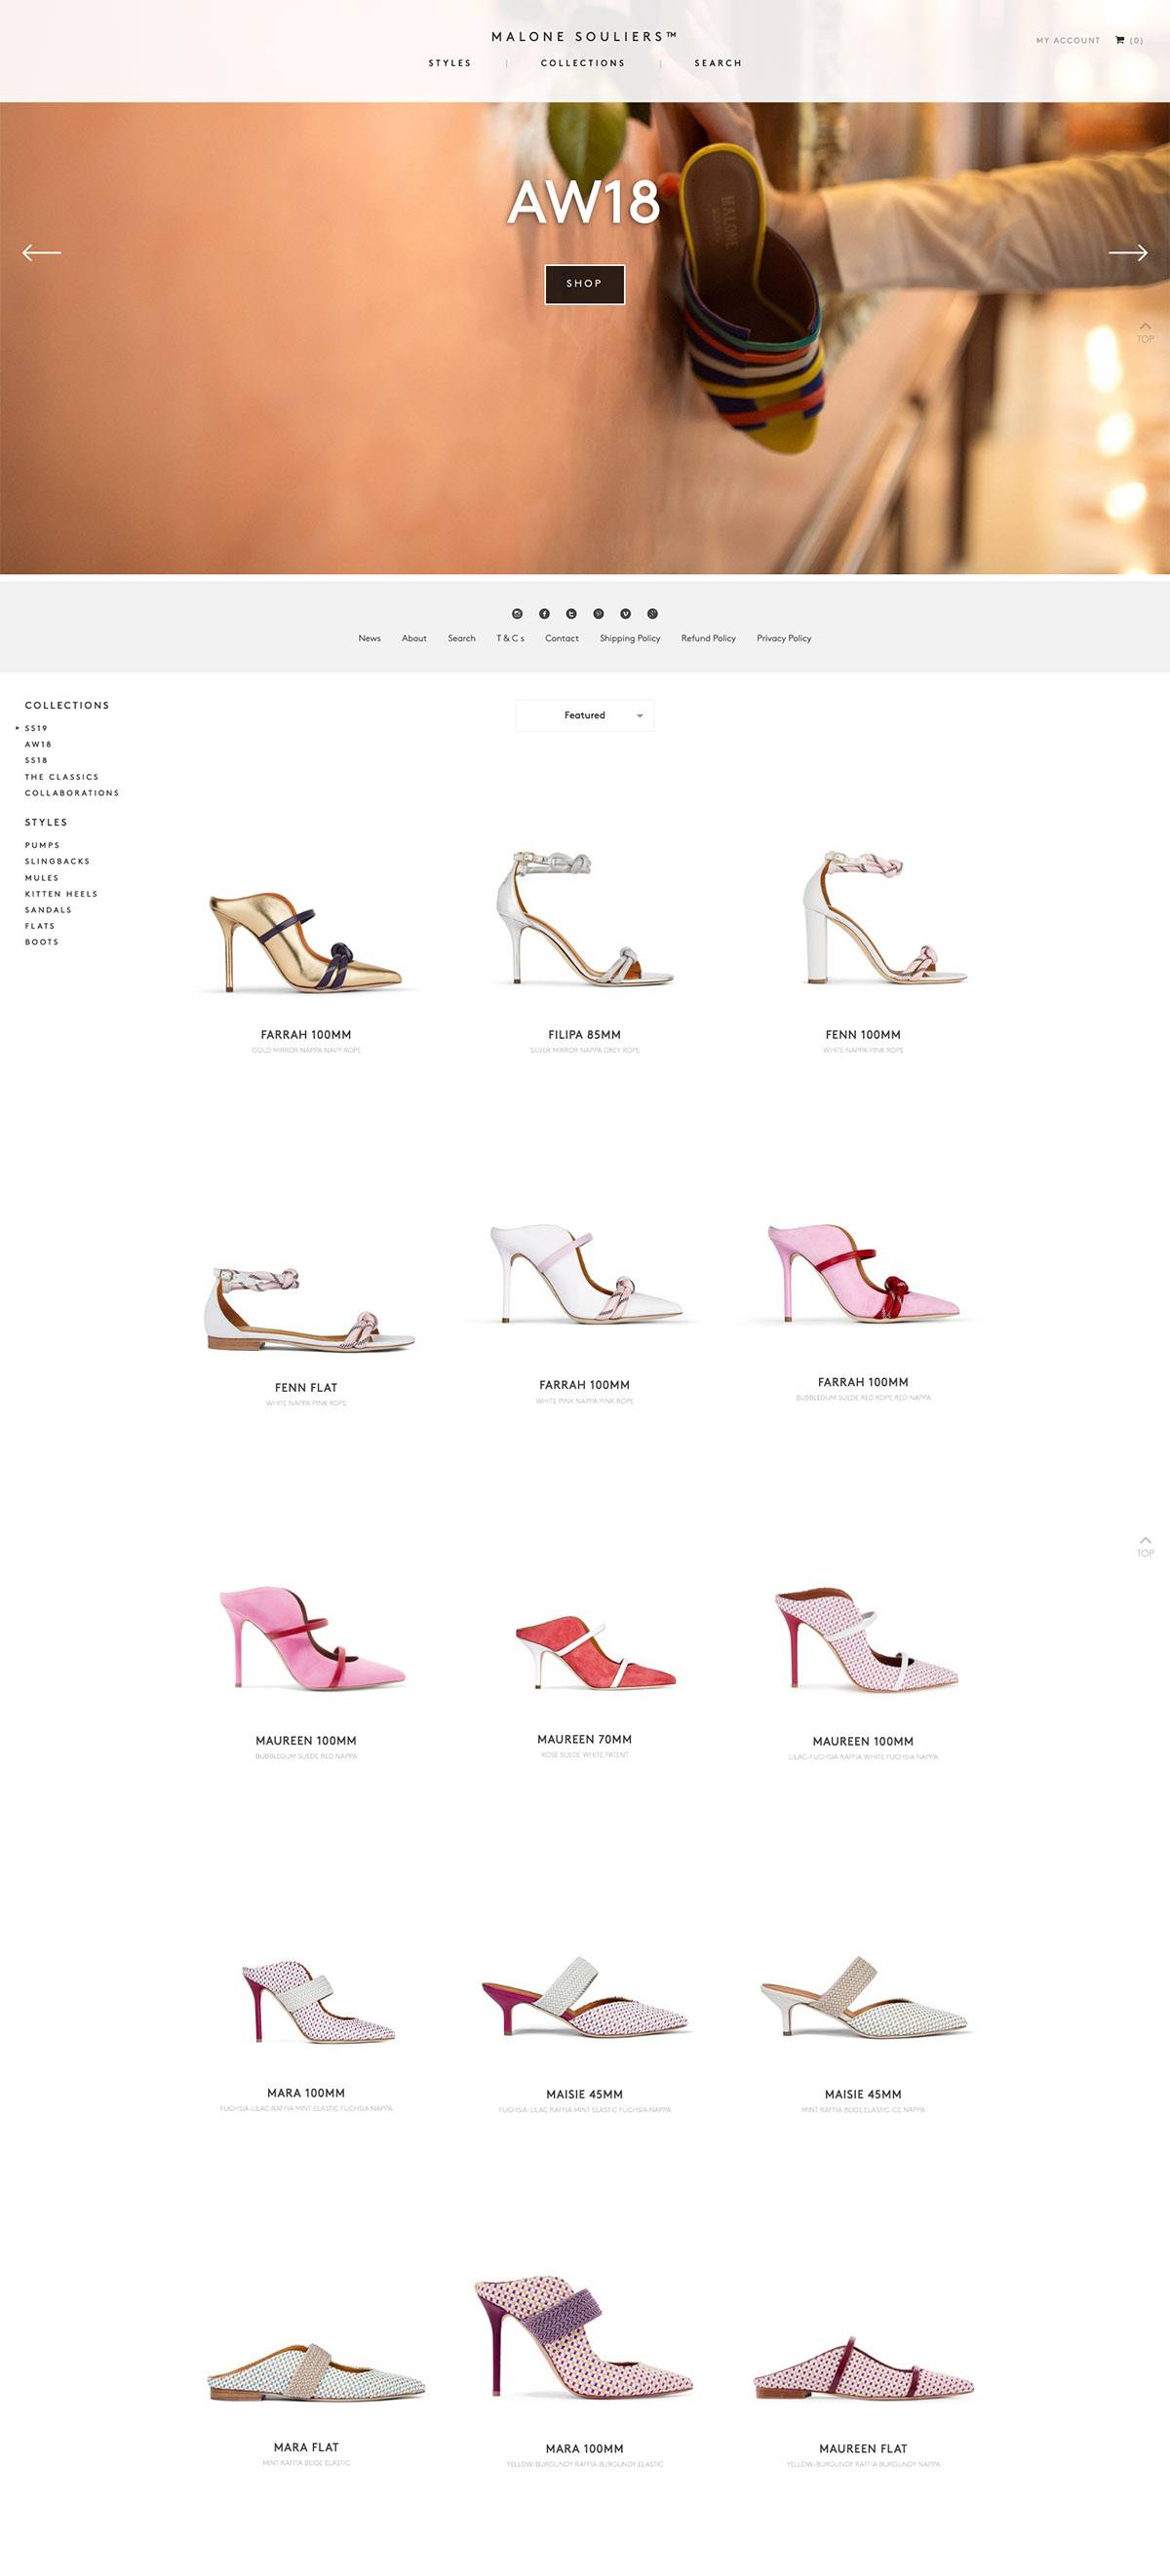 eCommerce website: Malone Souliers